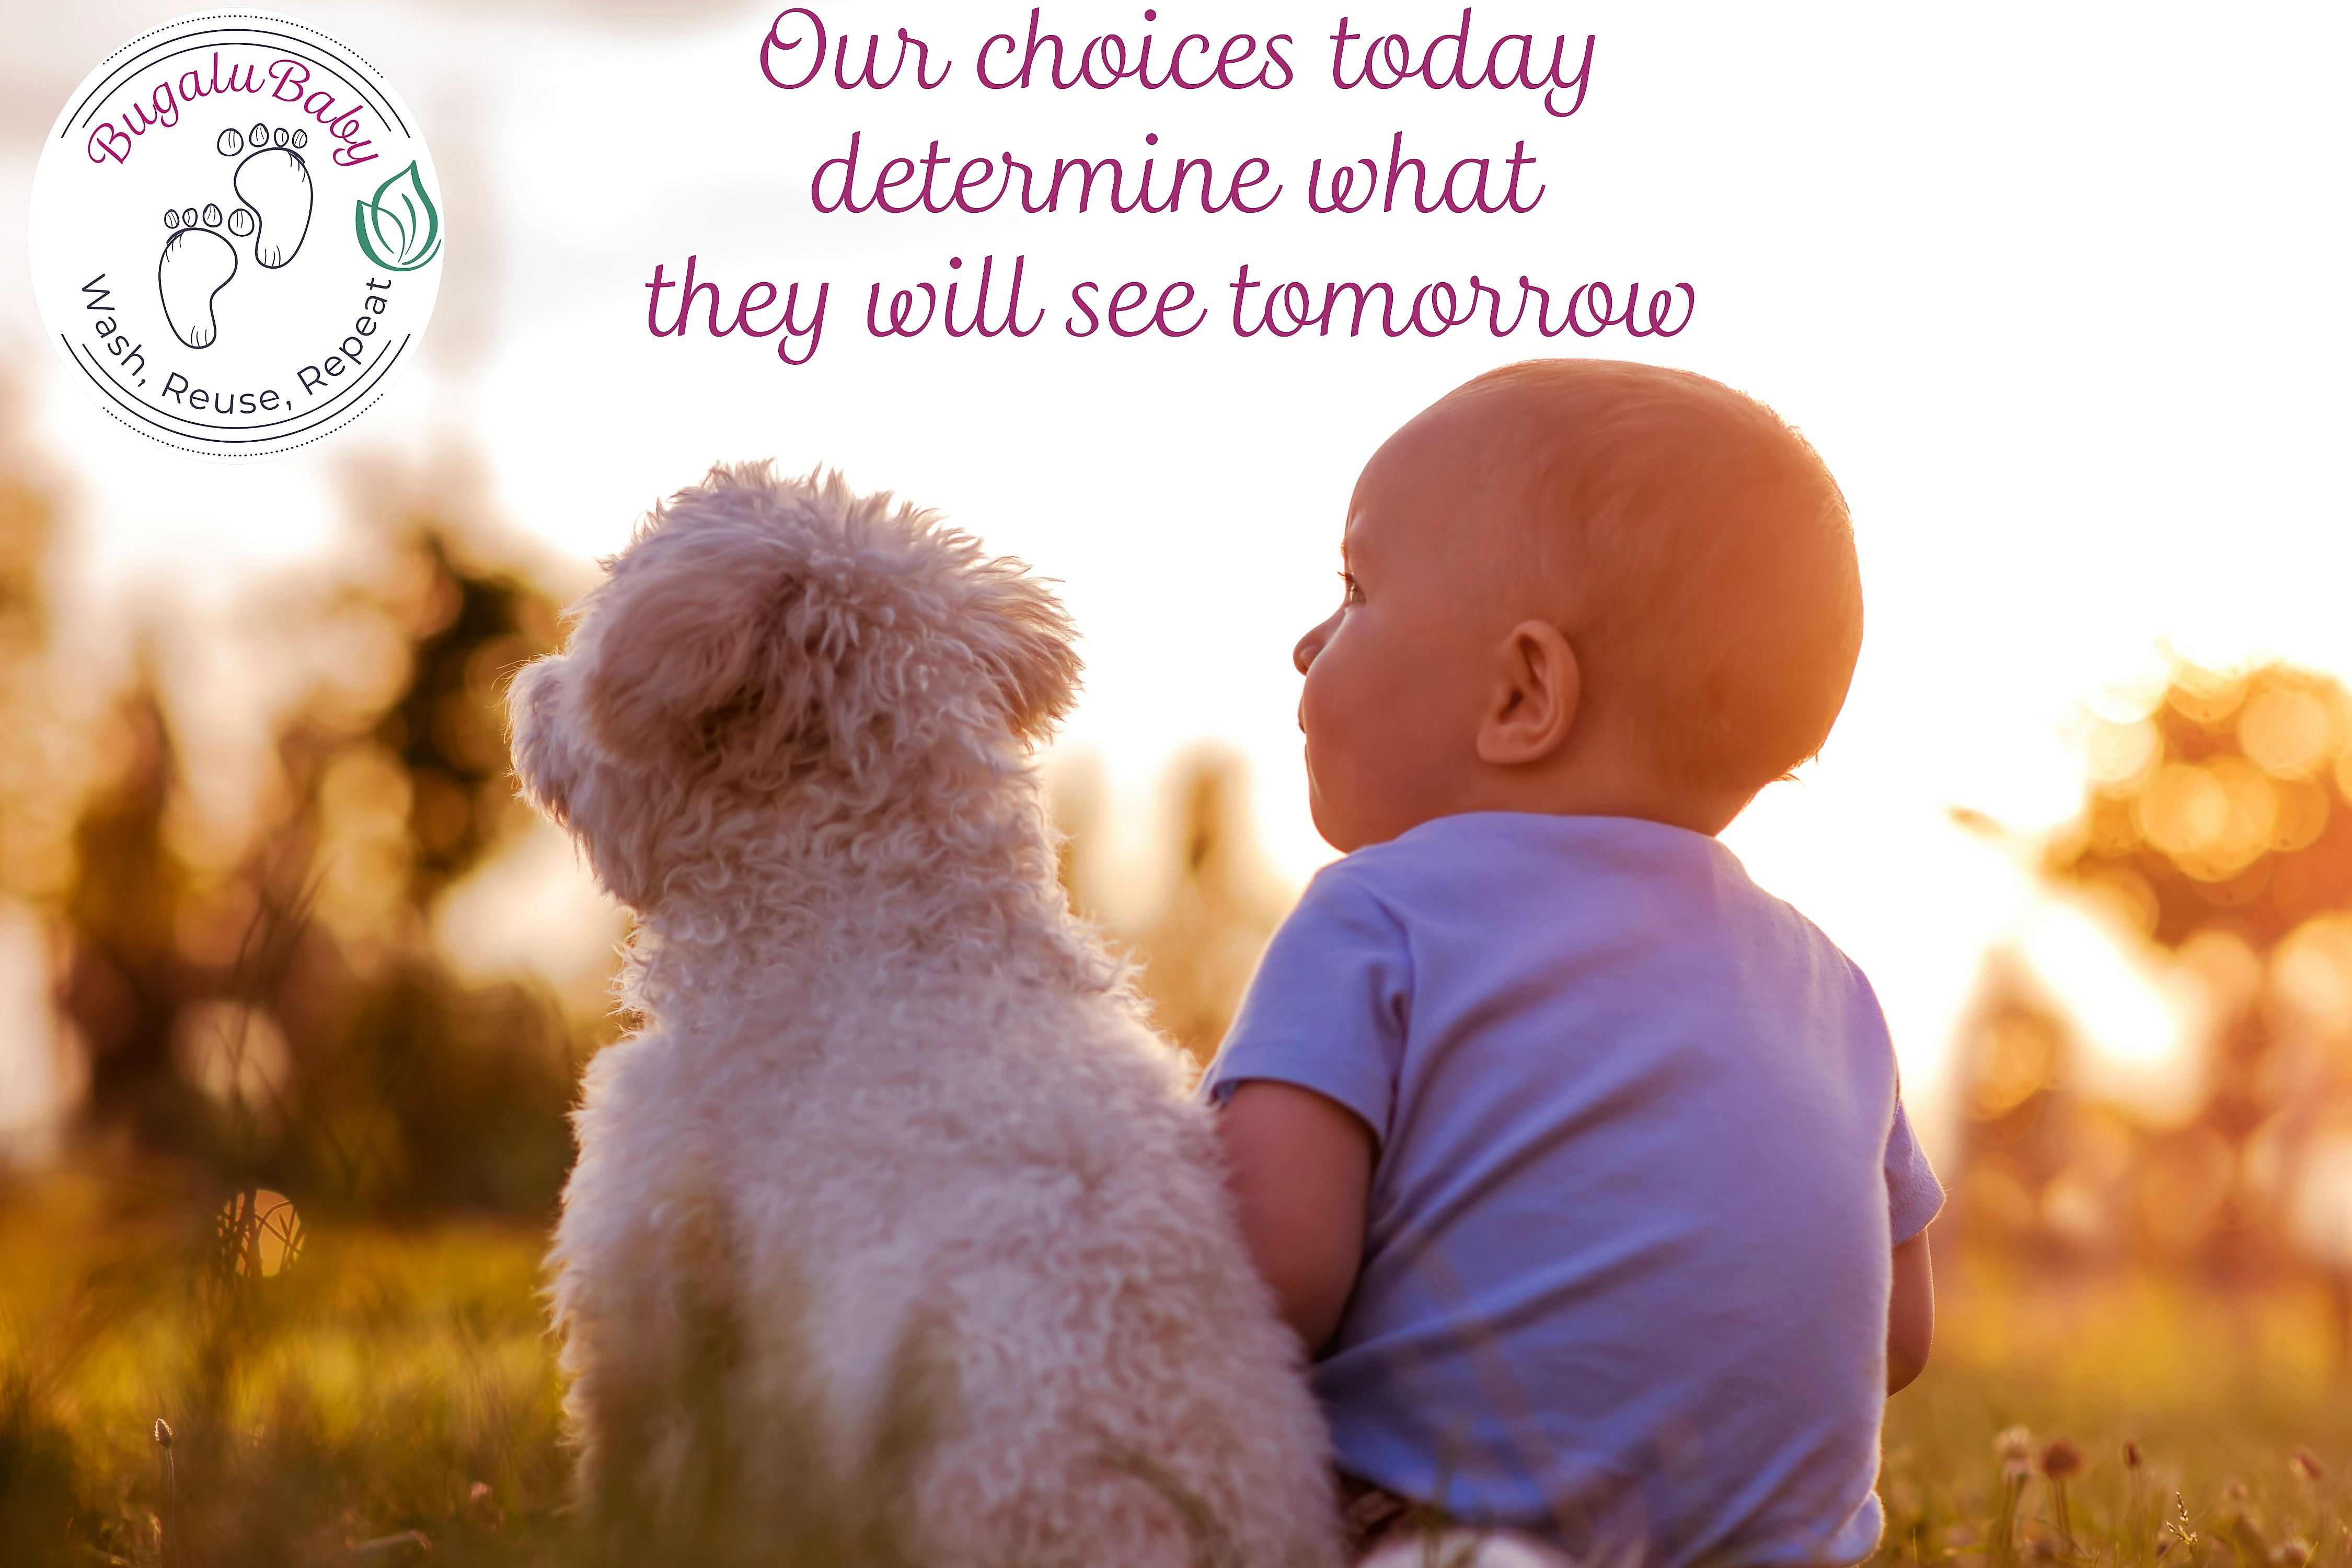 Our choices today determine what they will see tomorrow.